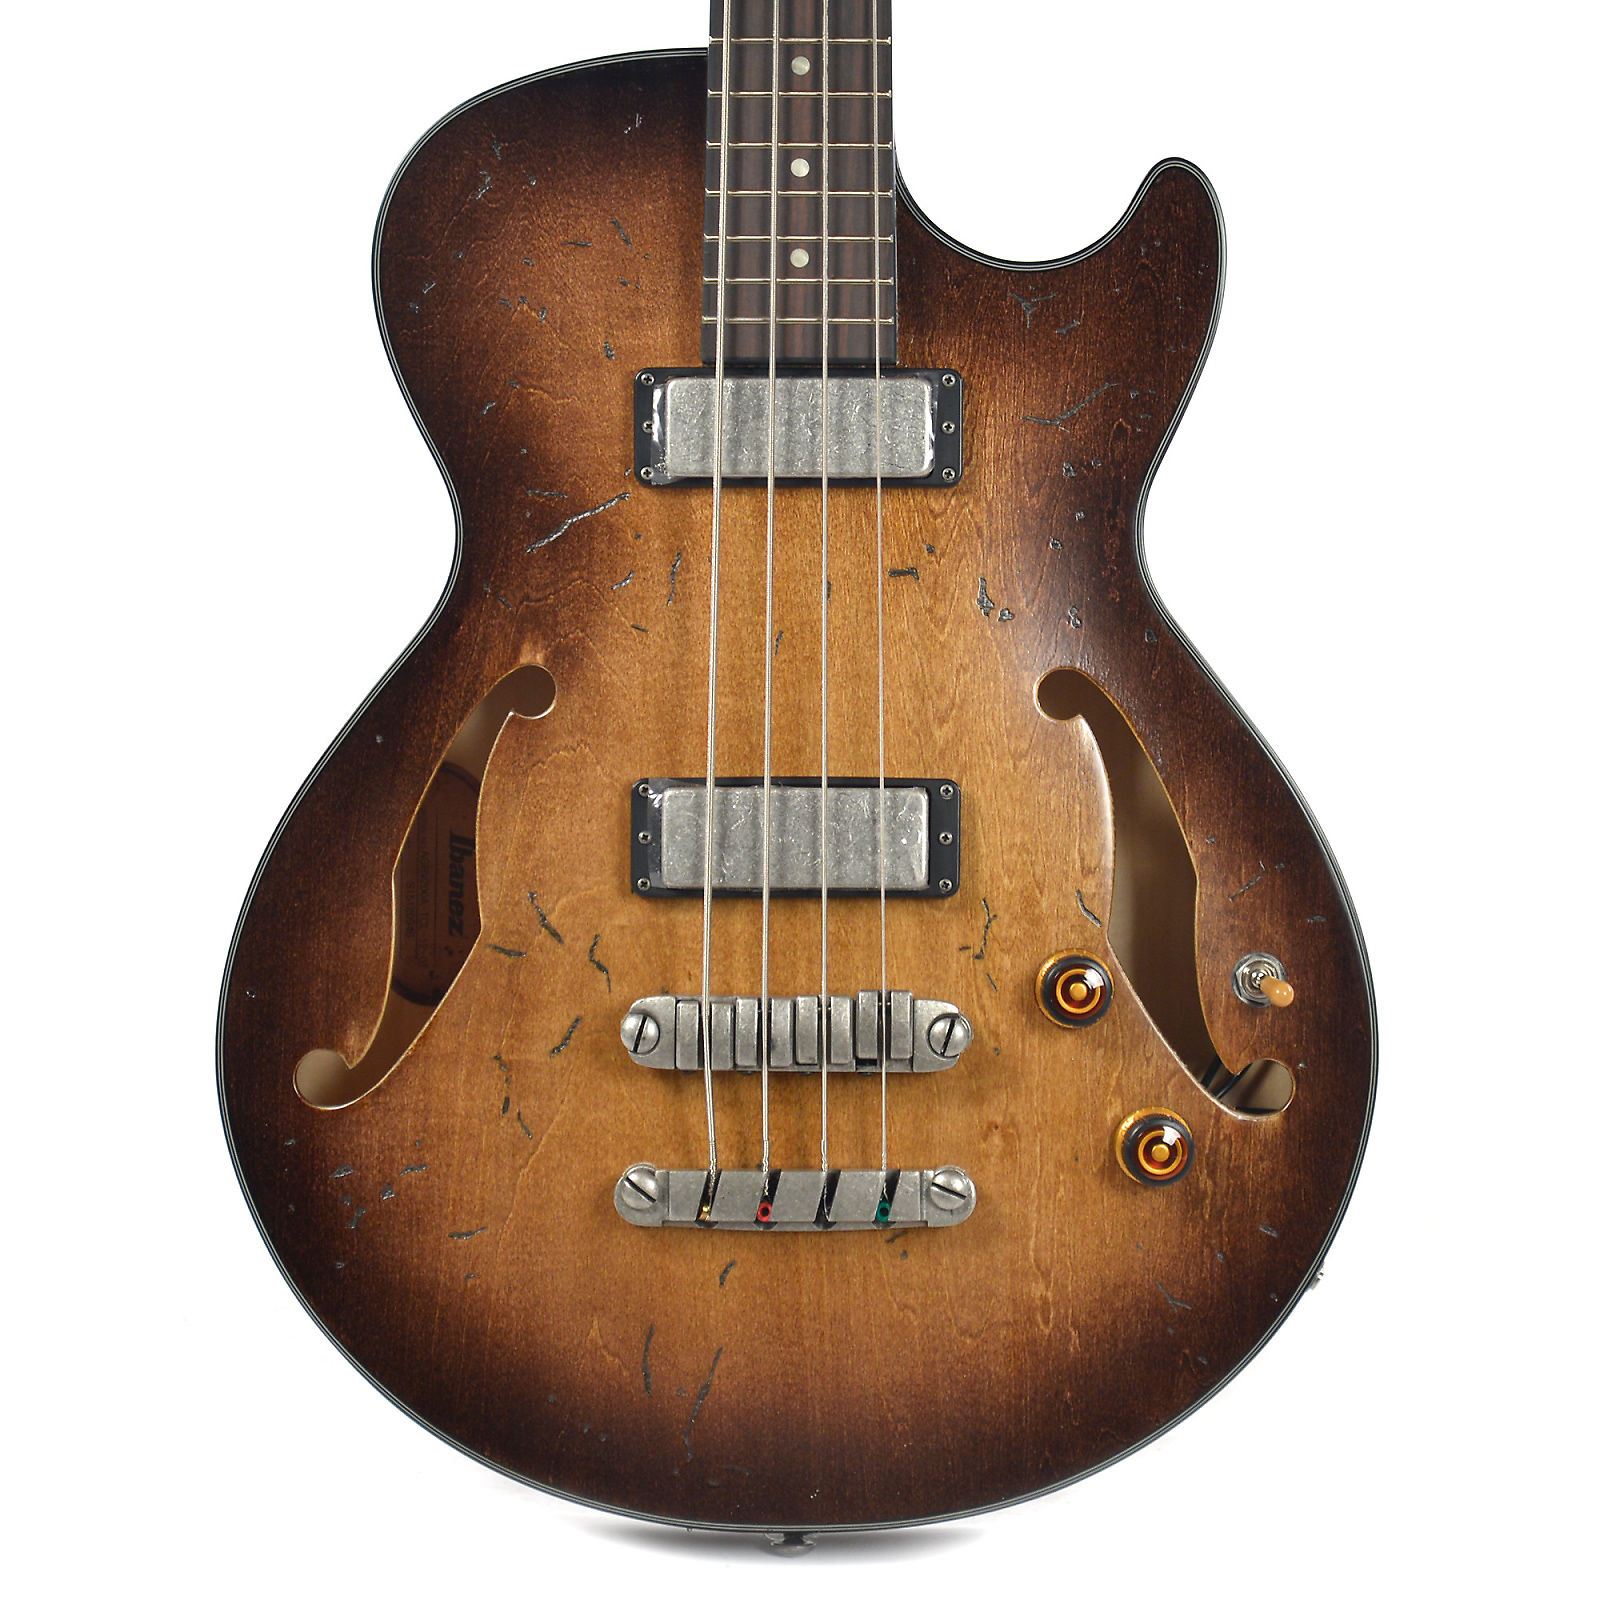 ibanez agbv200atcl artcore electric bass tobacco burst reverb. Black Bedroom Furniture Sets. Home Design Ideas